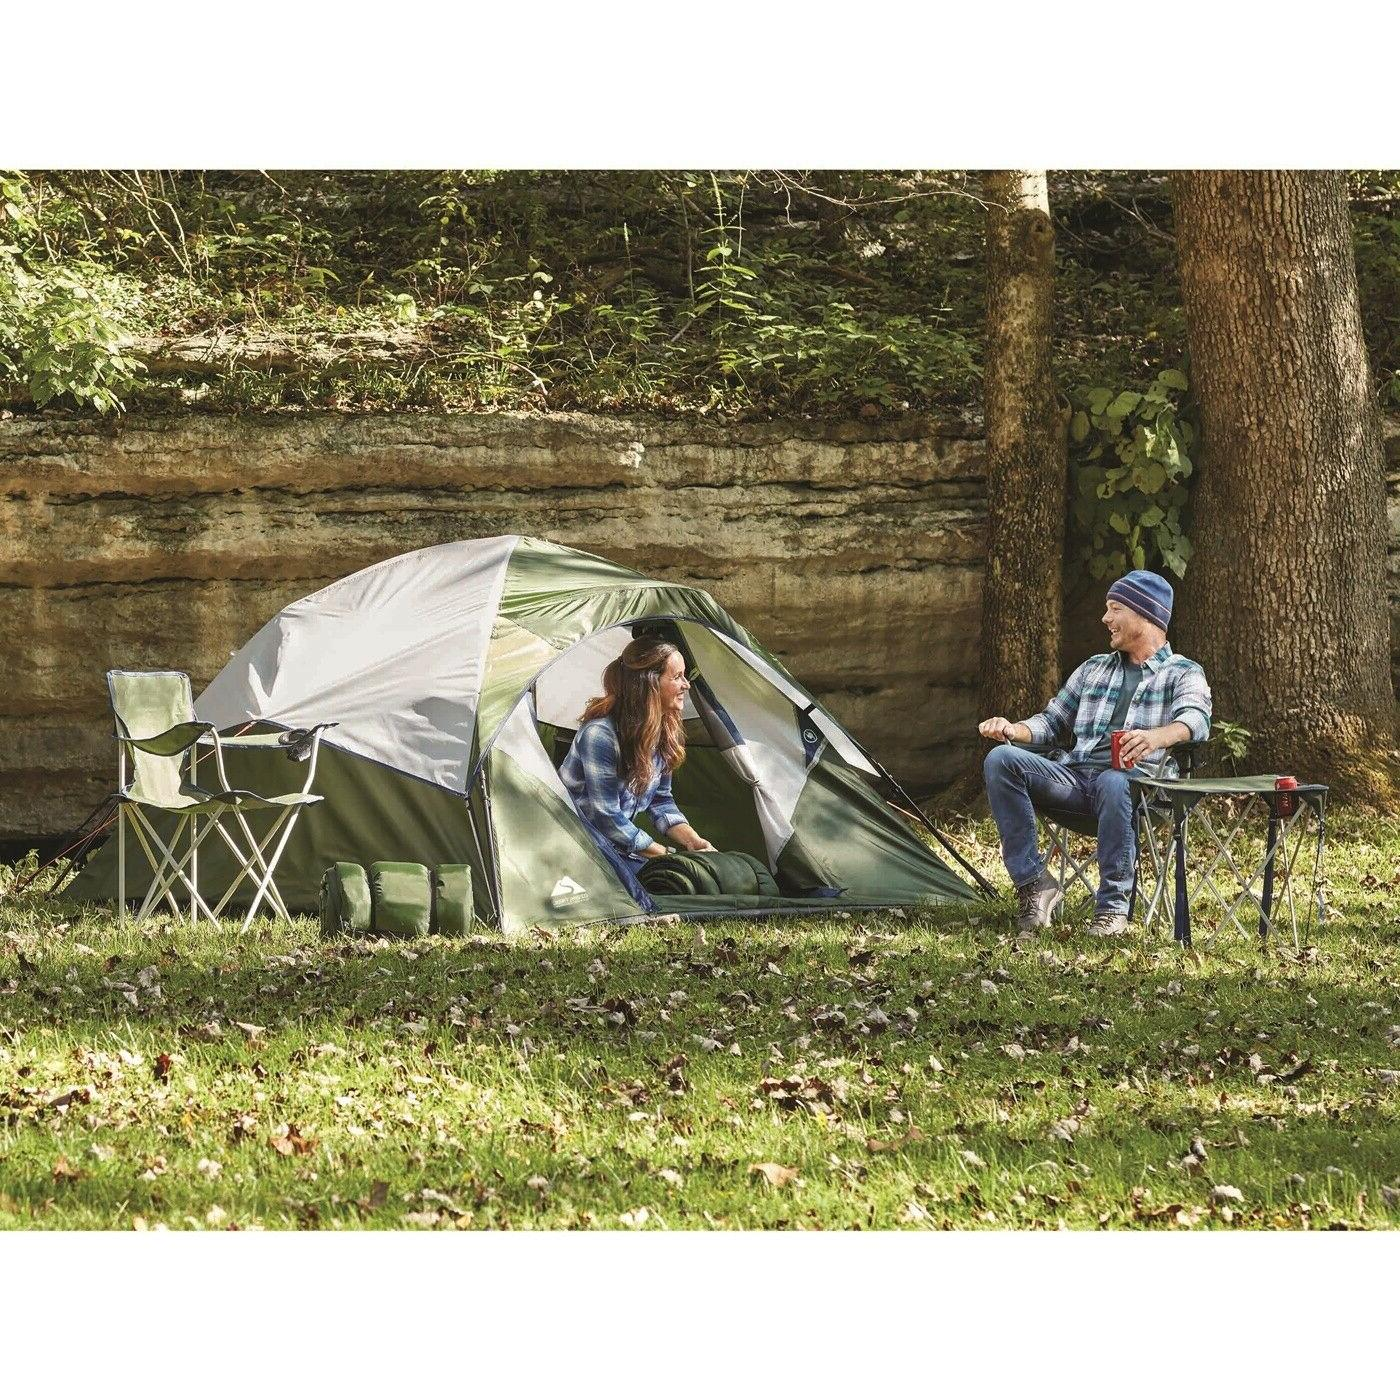 Combo Tent Sleeping Bags Chairs Travel